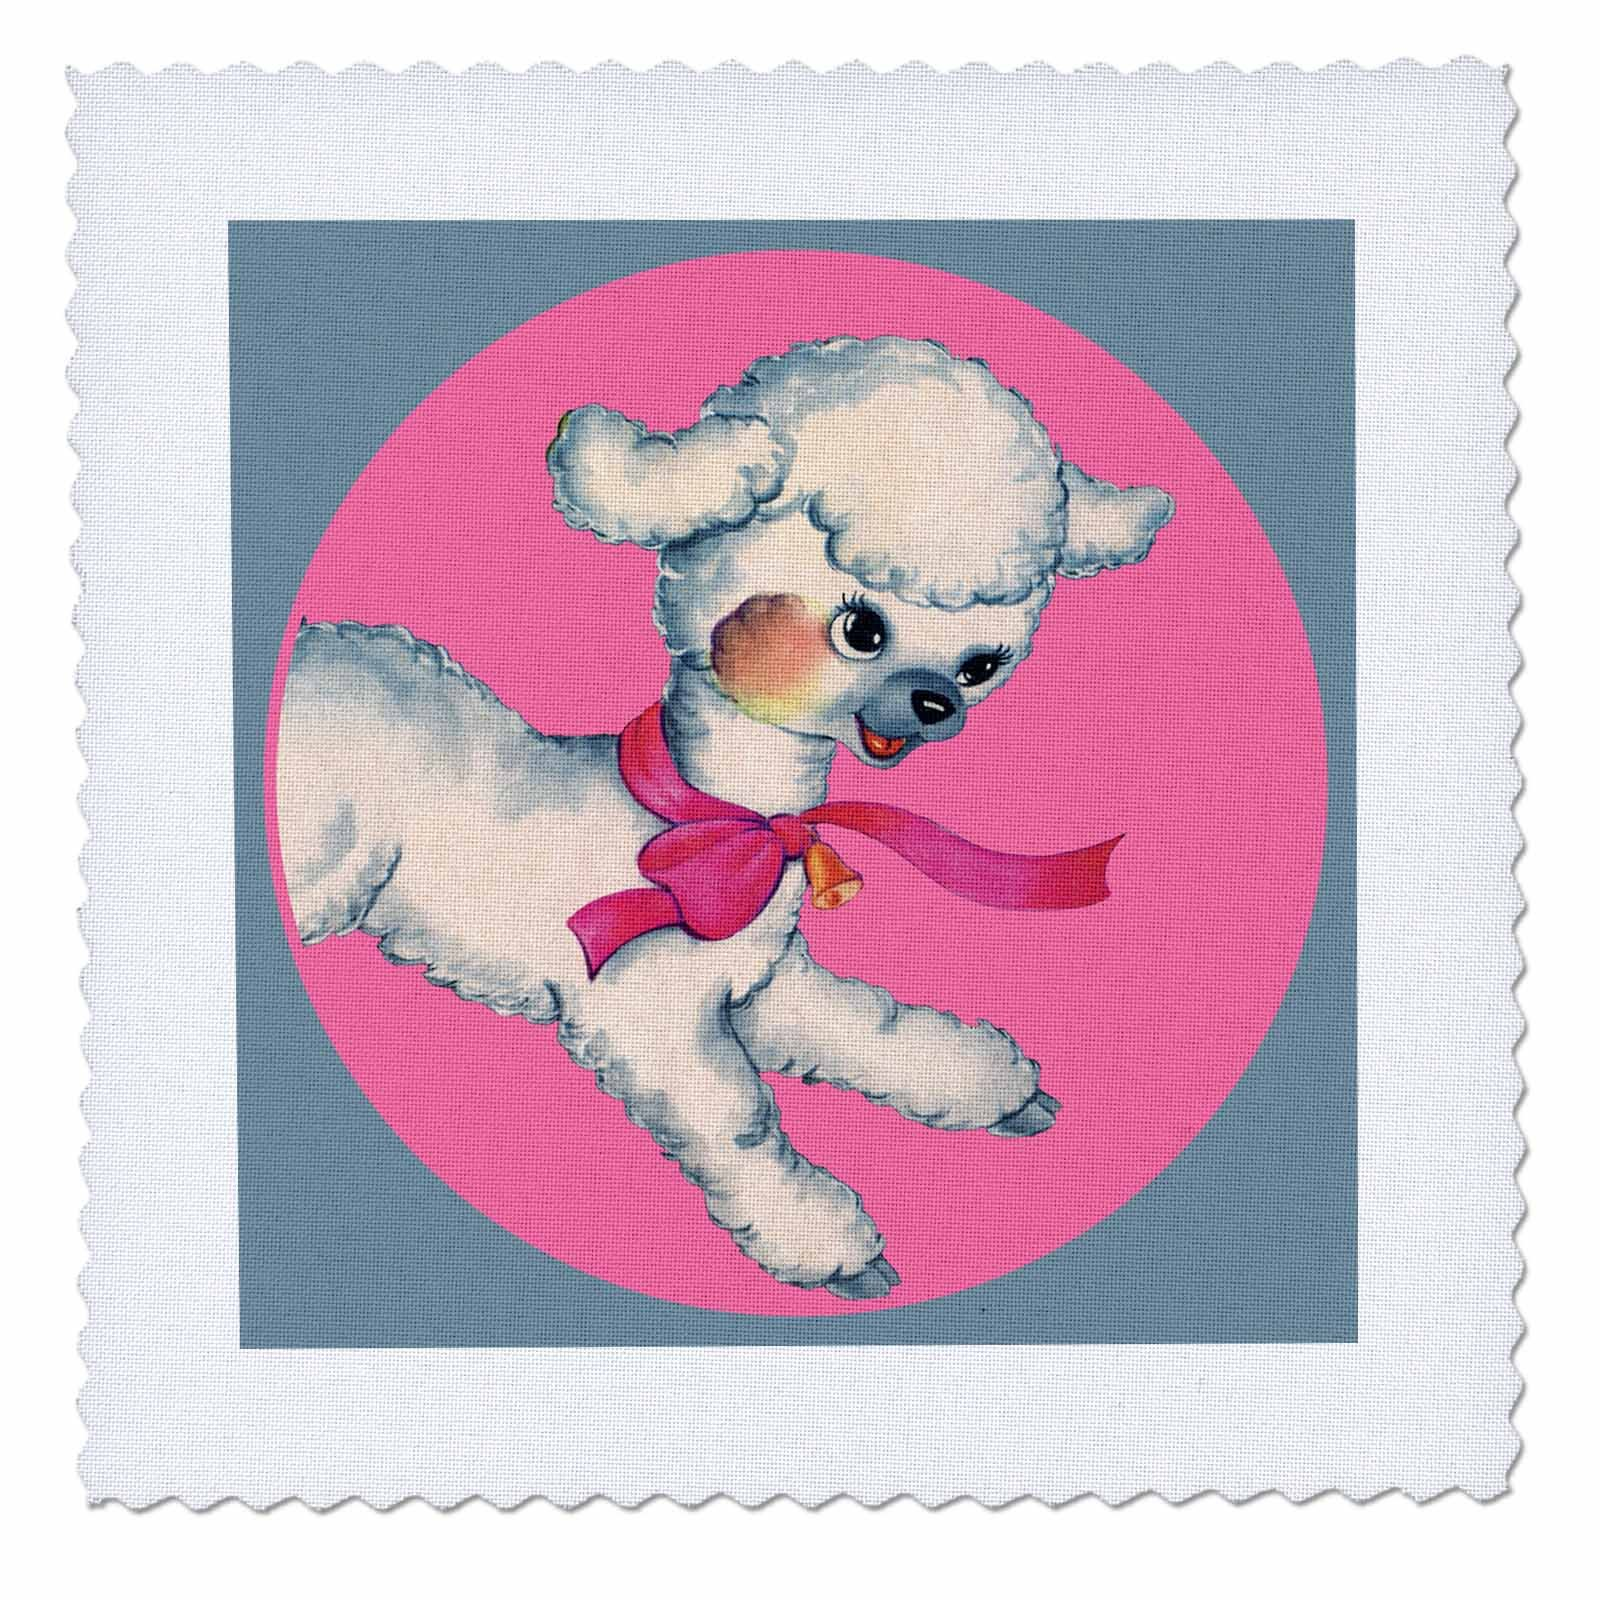 3dRose TNMPastPerfect Animals Farm - Cute Little Lamb in Pink Circle - 16x16 inch quilt square (qs_280653_6)